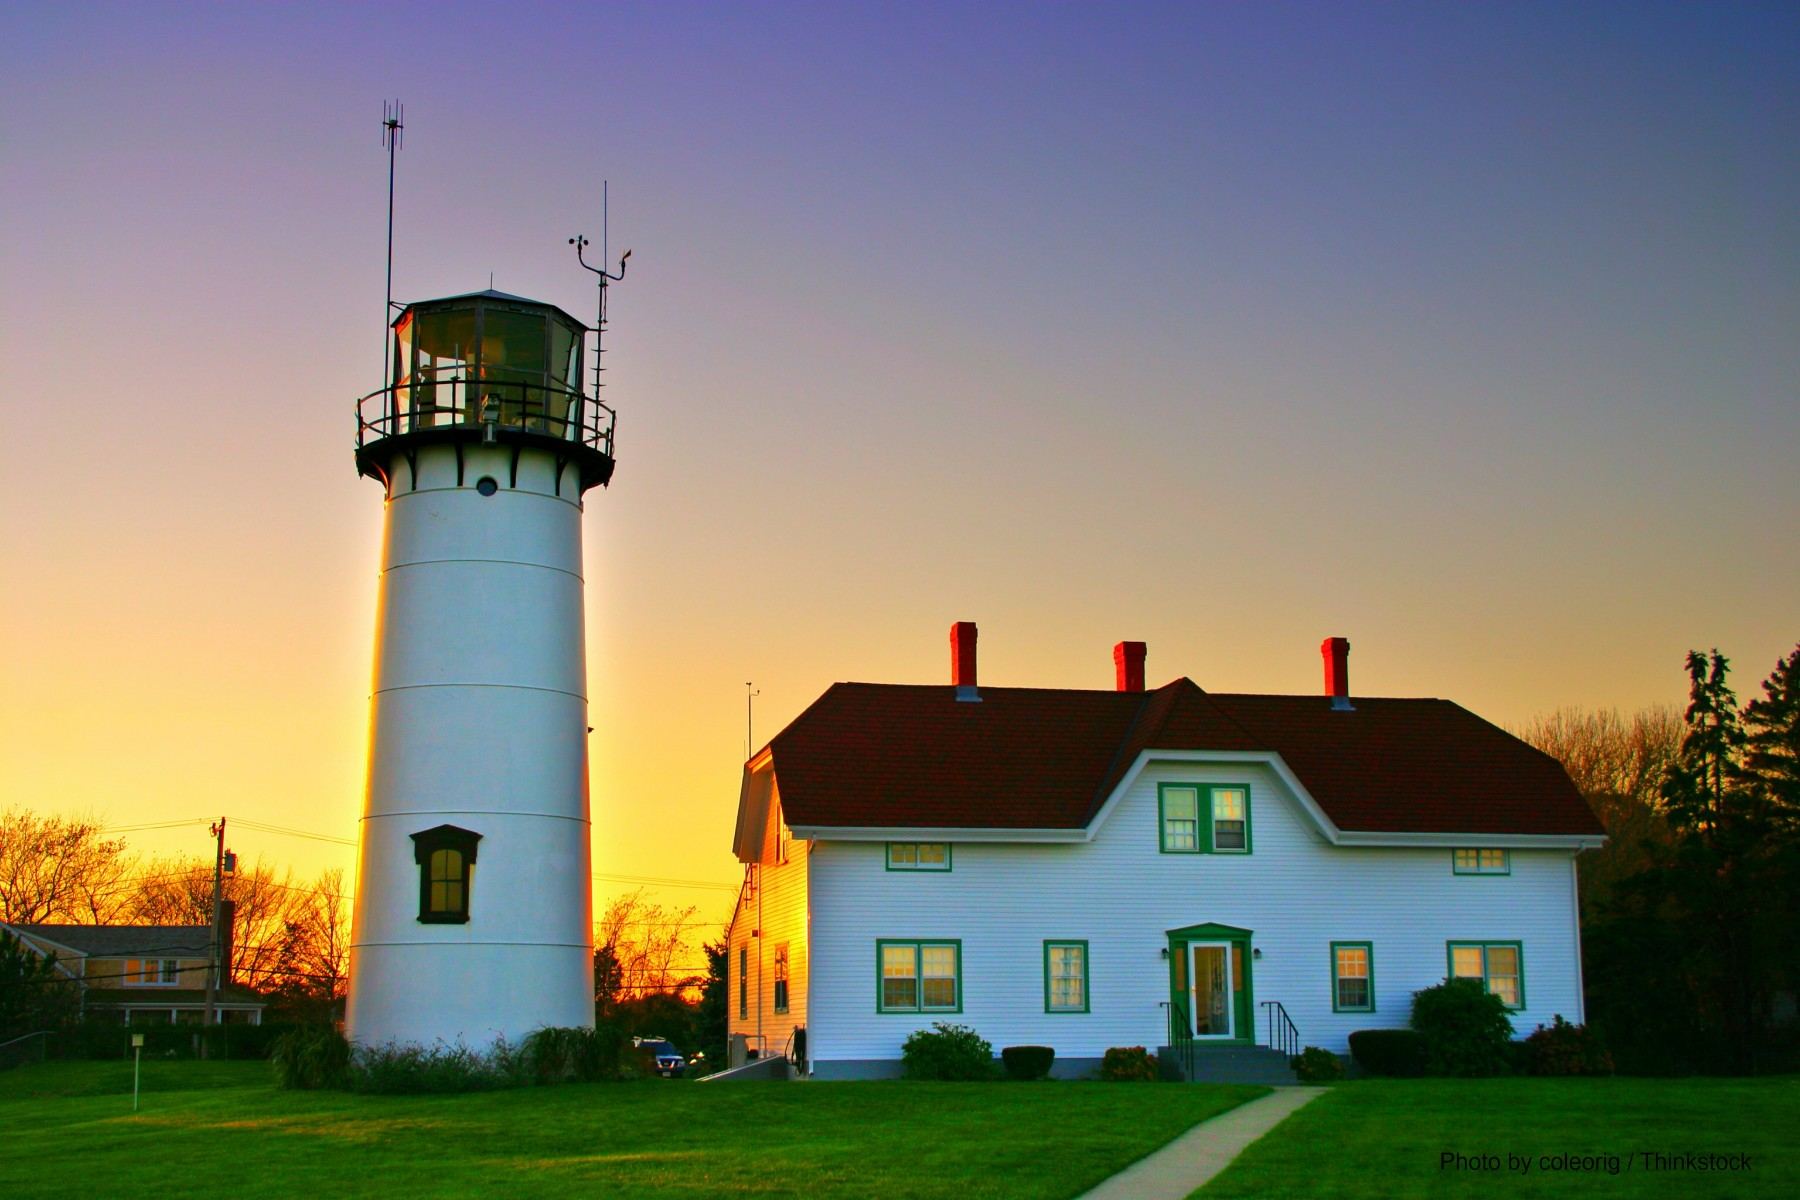 chatham lighthouse with brilliant sunset paining the sky